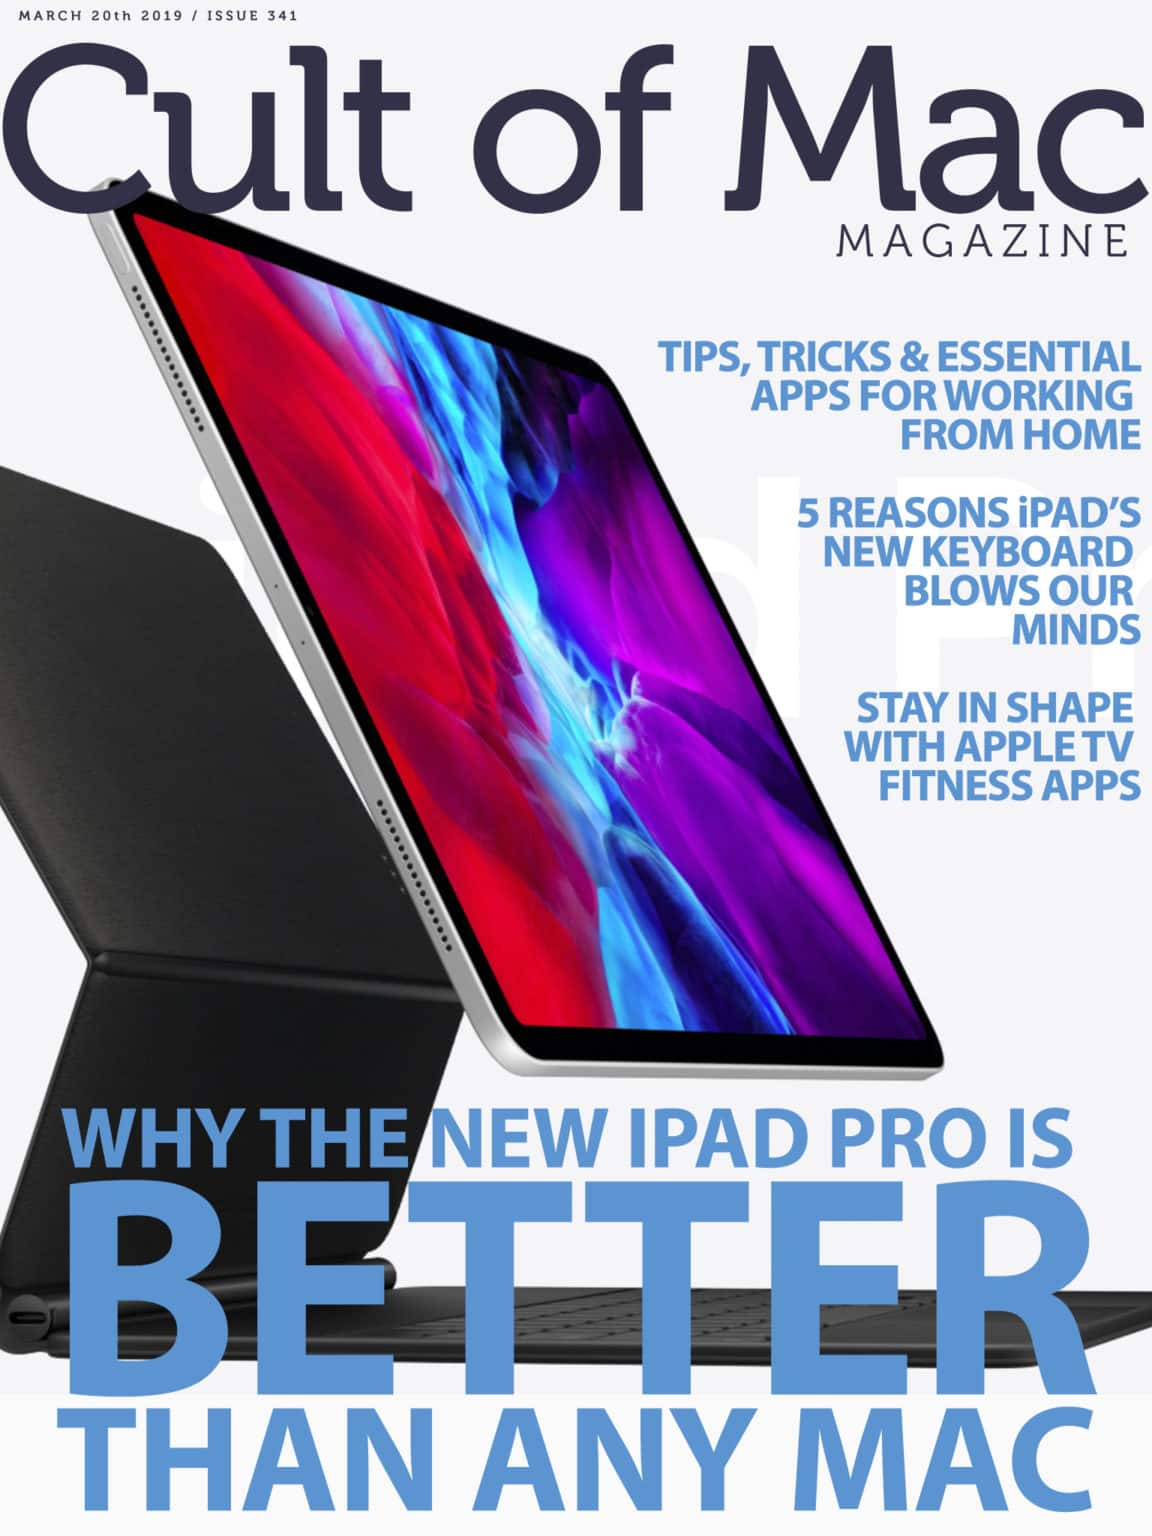 Why 2020 iPad Pro is better than any Mac